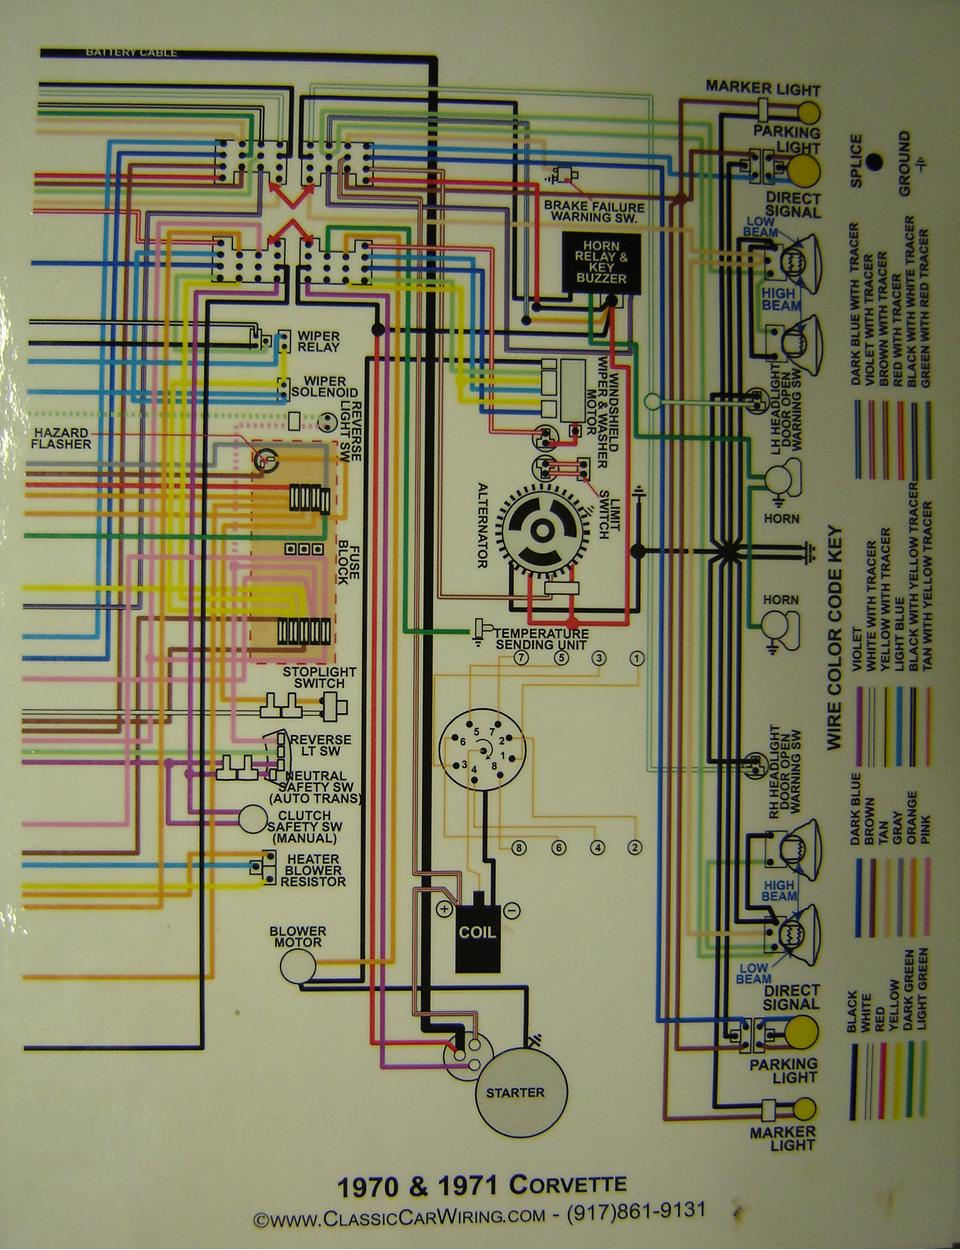 1970 71 corvette color wiring diagram B chevy diagrams 1989 corvette engine wiring harness at cita.asia